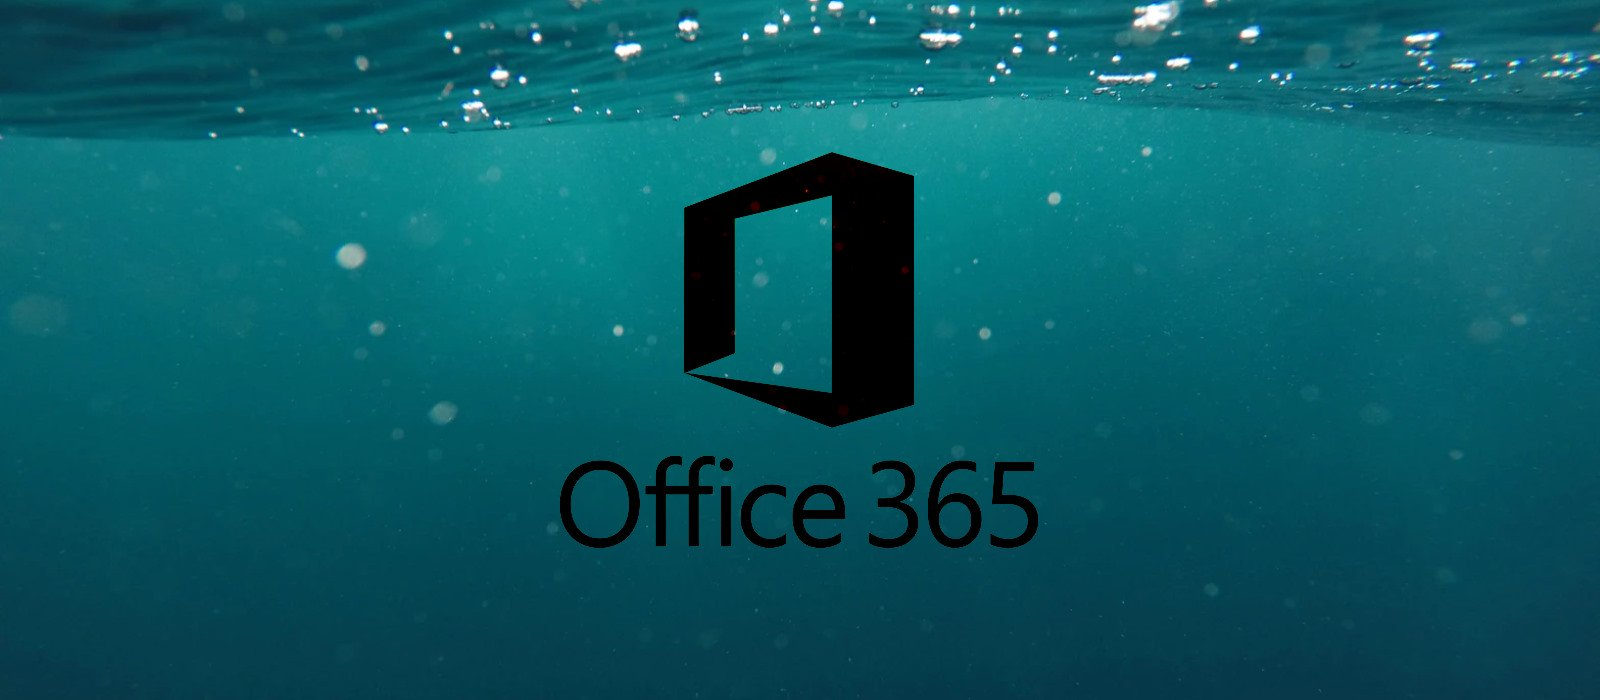 Office 365 will let you manage phishing simulation emails